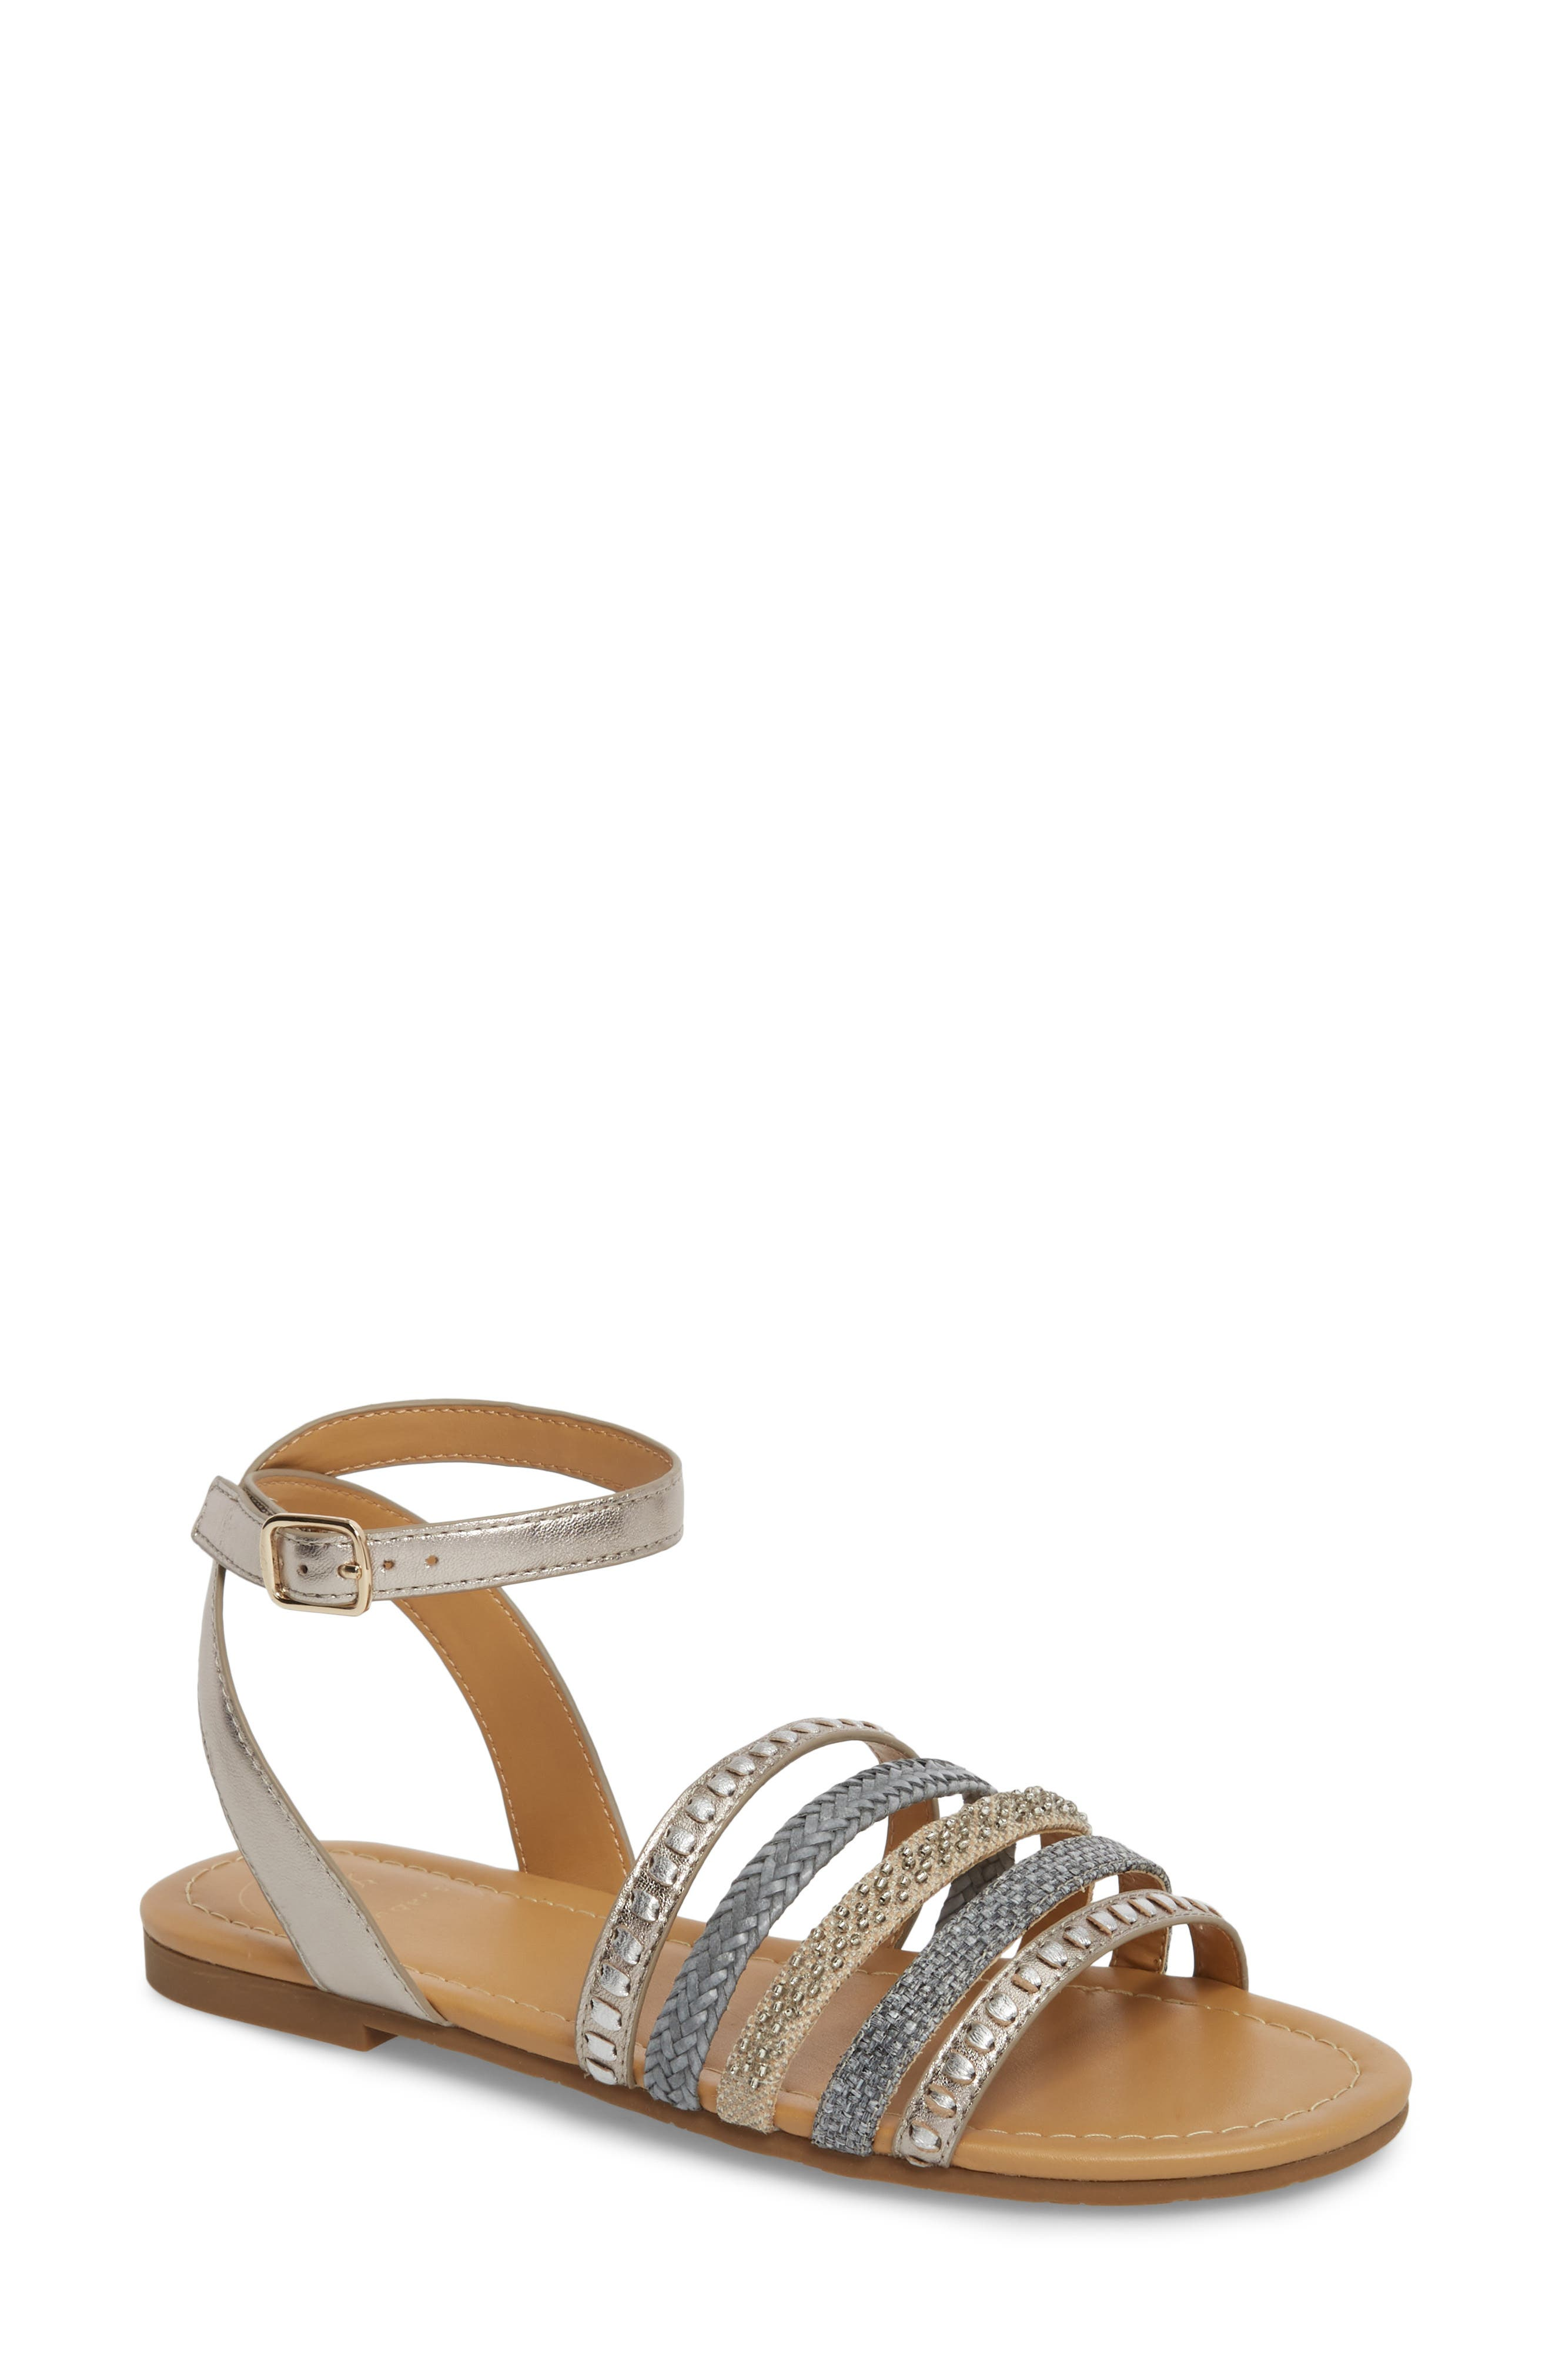 Hannah Braided Embellished Sandal,                             Main thumbnail 1, color,                             040